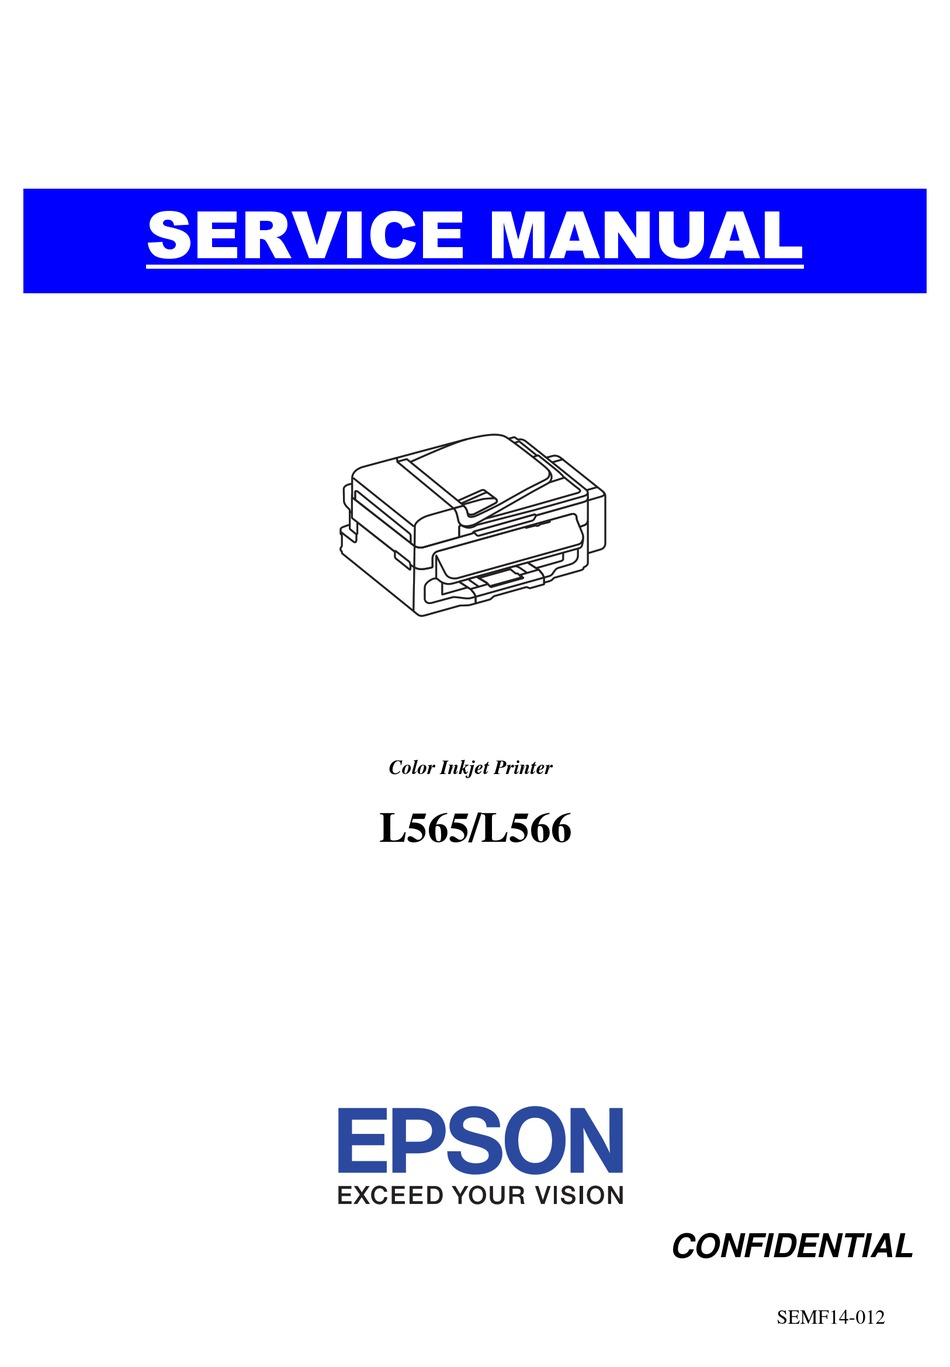 Download Epson Scan L565 : download, epson, EPSON, SERVICE, MANUAL, Download, ManualsLib